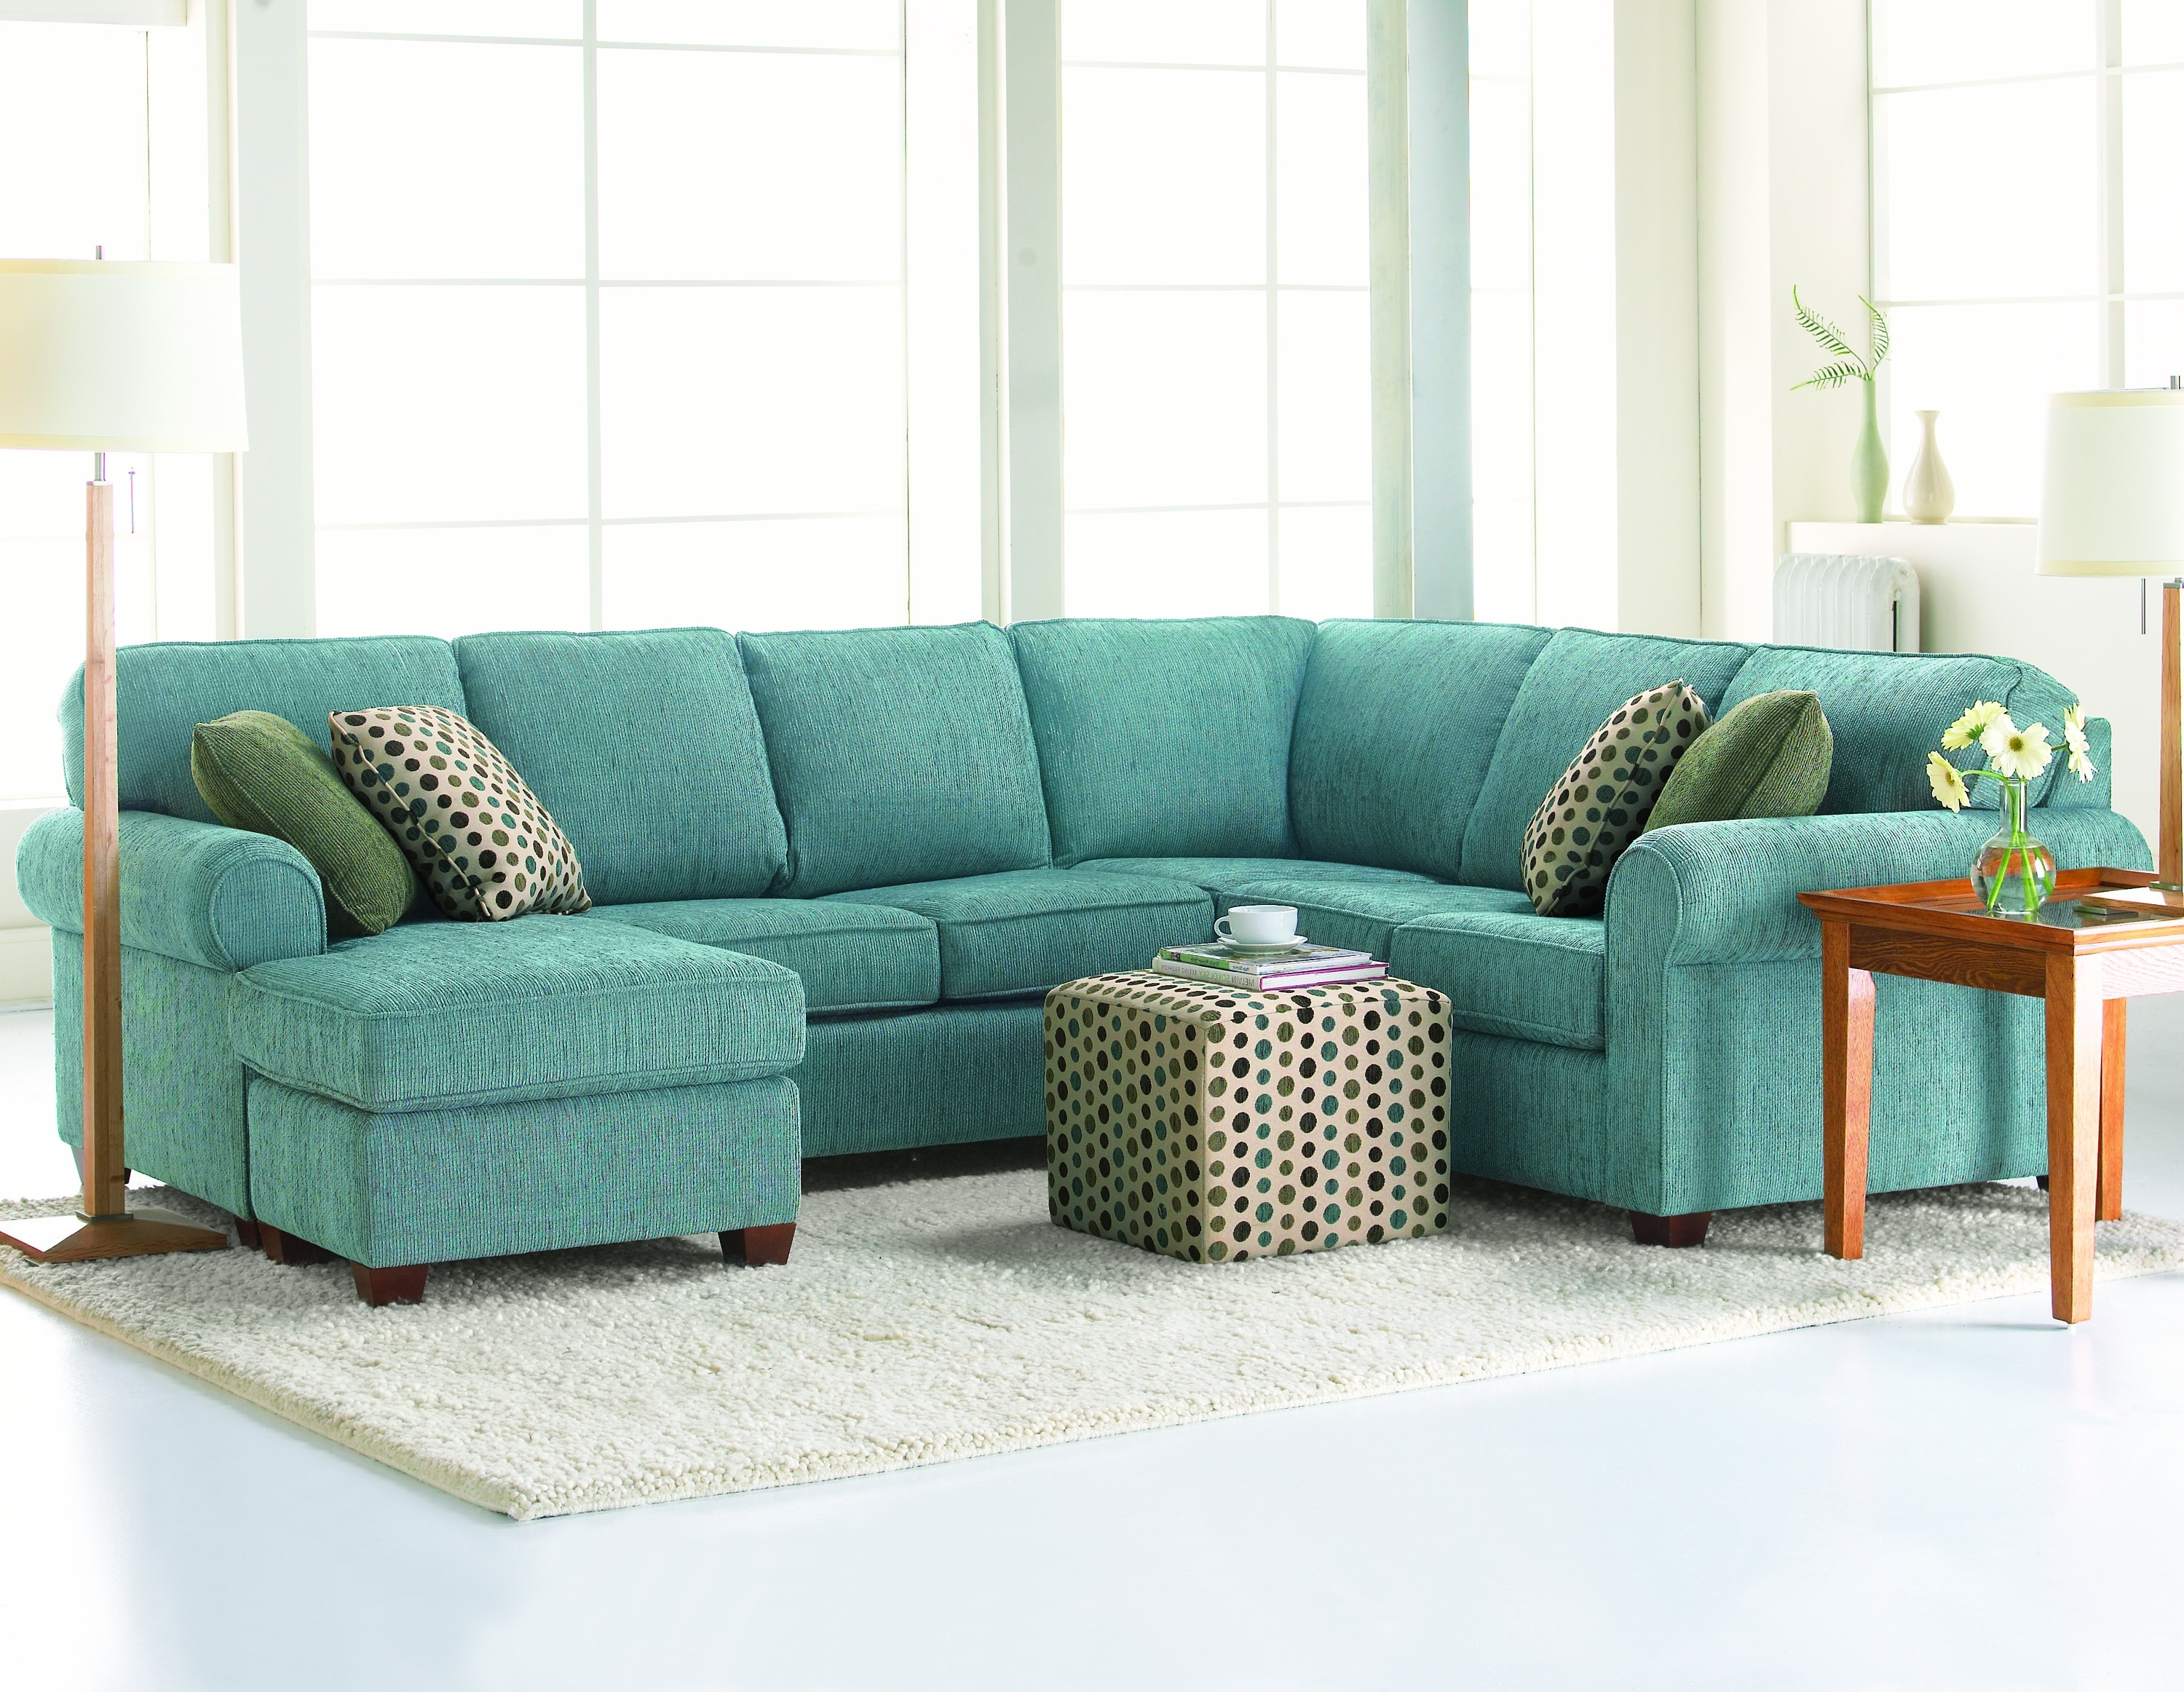 Recent Sectional Sofas – Thompson Brothers Furniture Within Ontario Sectional Sofas (View 17 of 20)